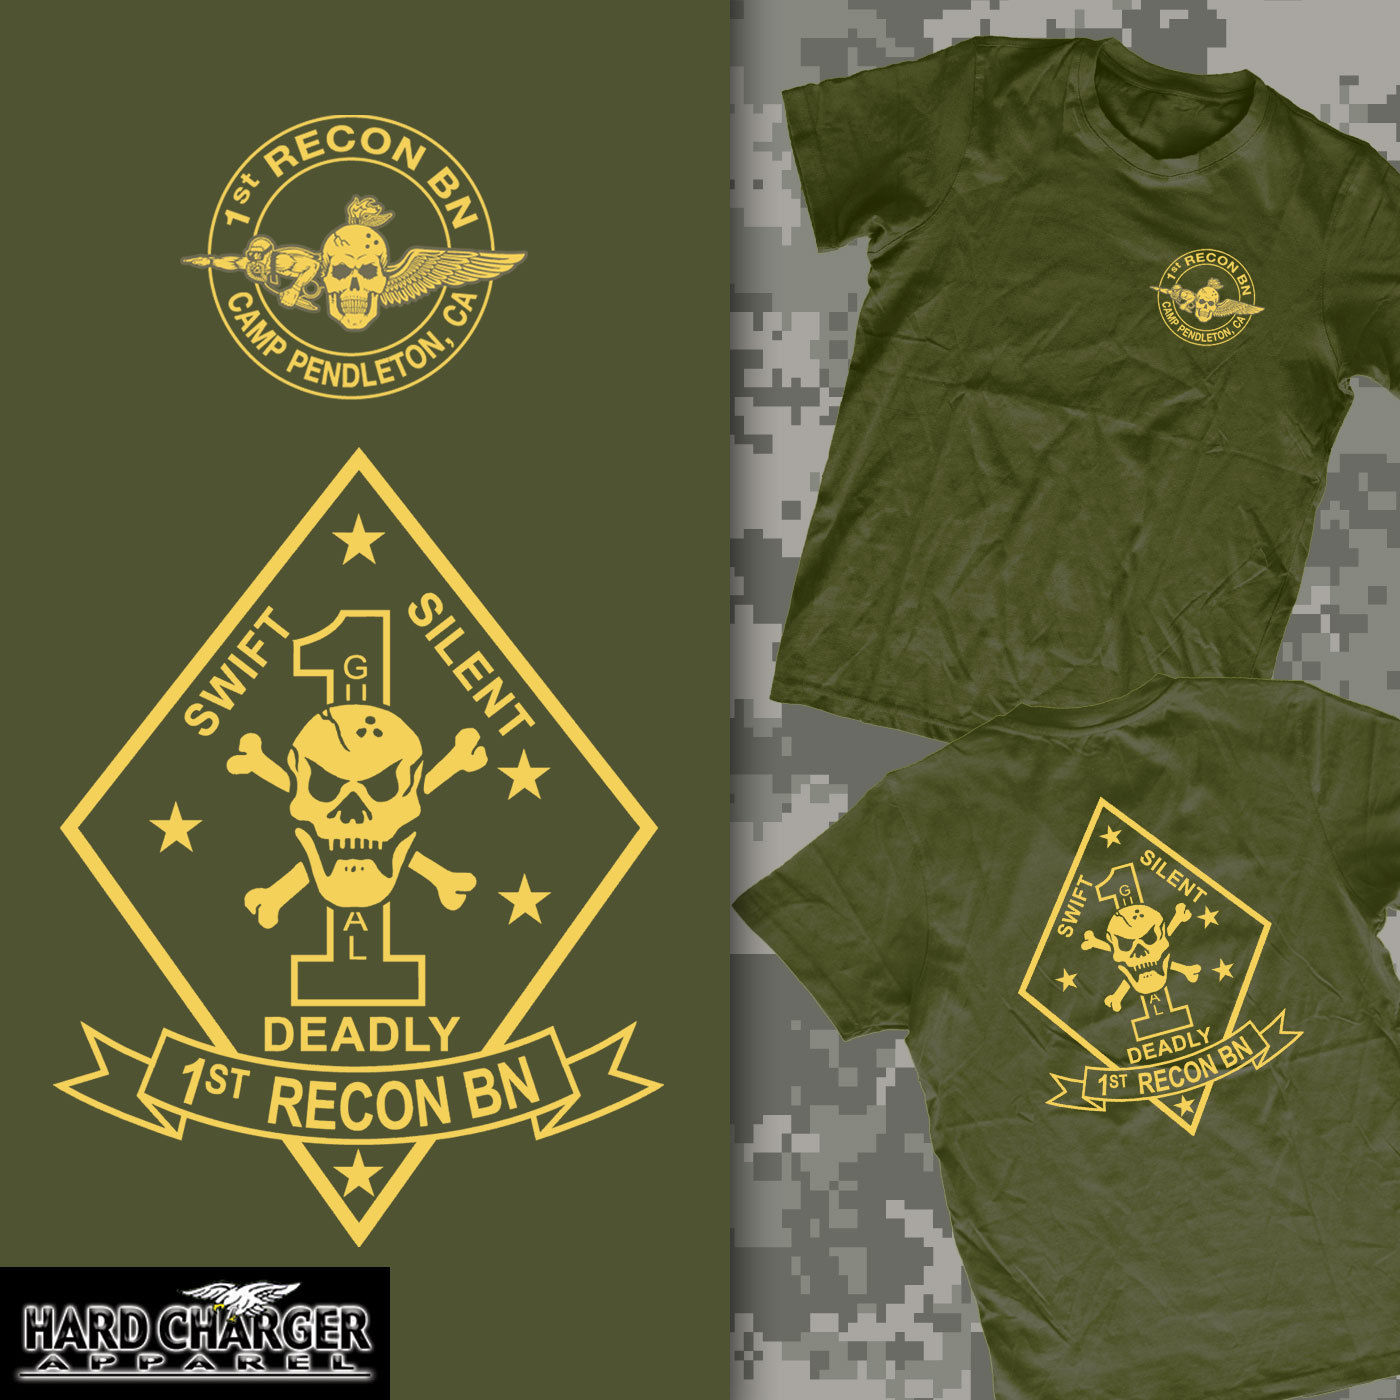 US $13 22 10% OFF|2019 Hot sale 1st Recon Battalion Marine Corps Camp  Pendleton, CA Recon Jack USMC MOTO shirt-in T-Shirts from Men's Clothing on